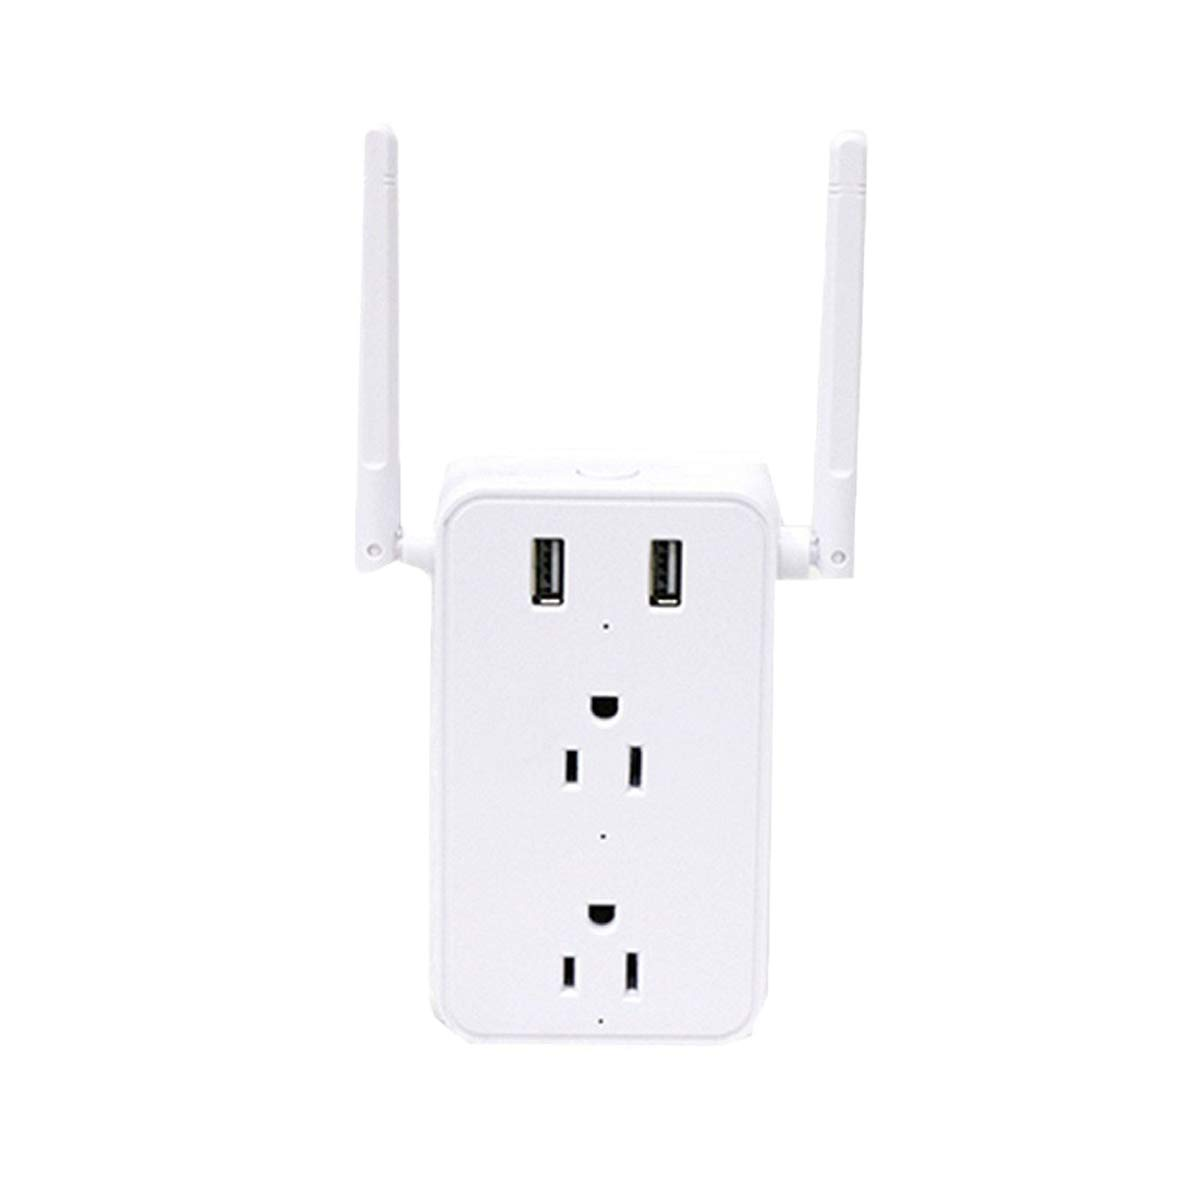 300Mbps WiFi Range Extender 2 in 1 Smart Plug,2 Plugs and 2 USB Ports WiFi Switch, Compatible with Alexa, Google Home,Remote Control Only Supports 2.4Ghz Network